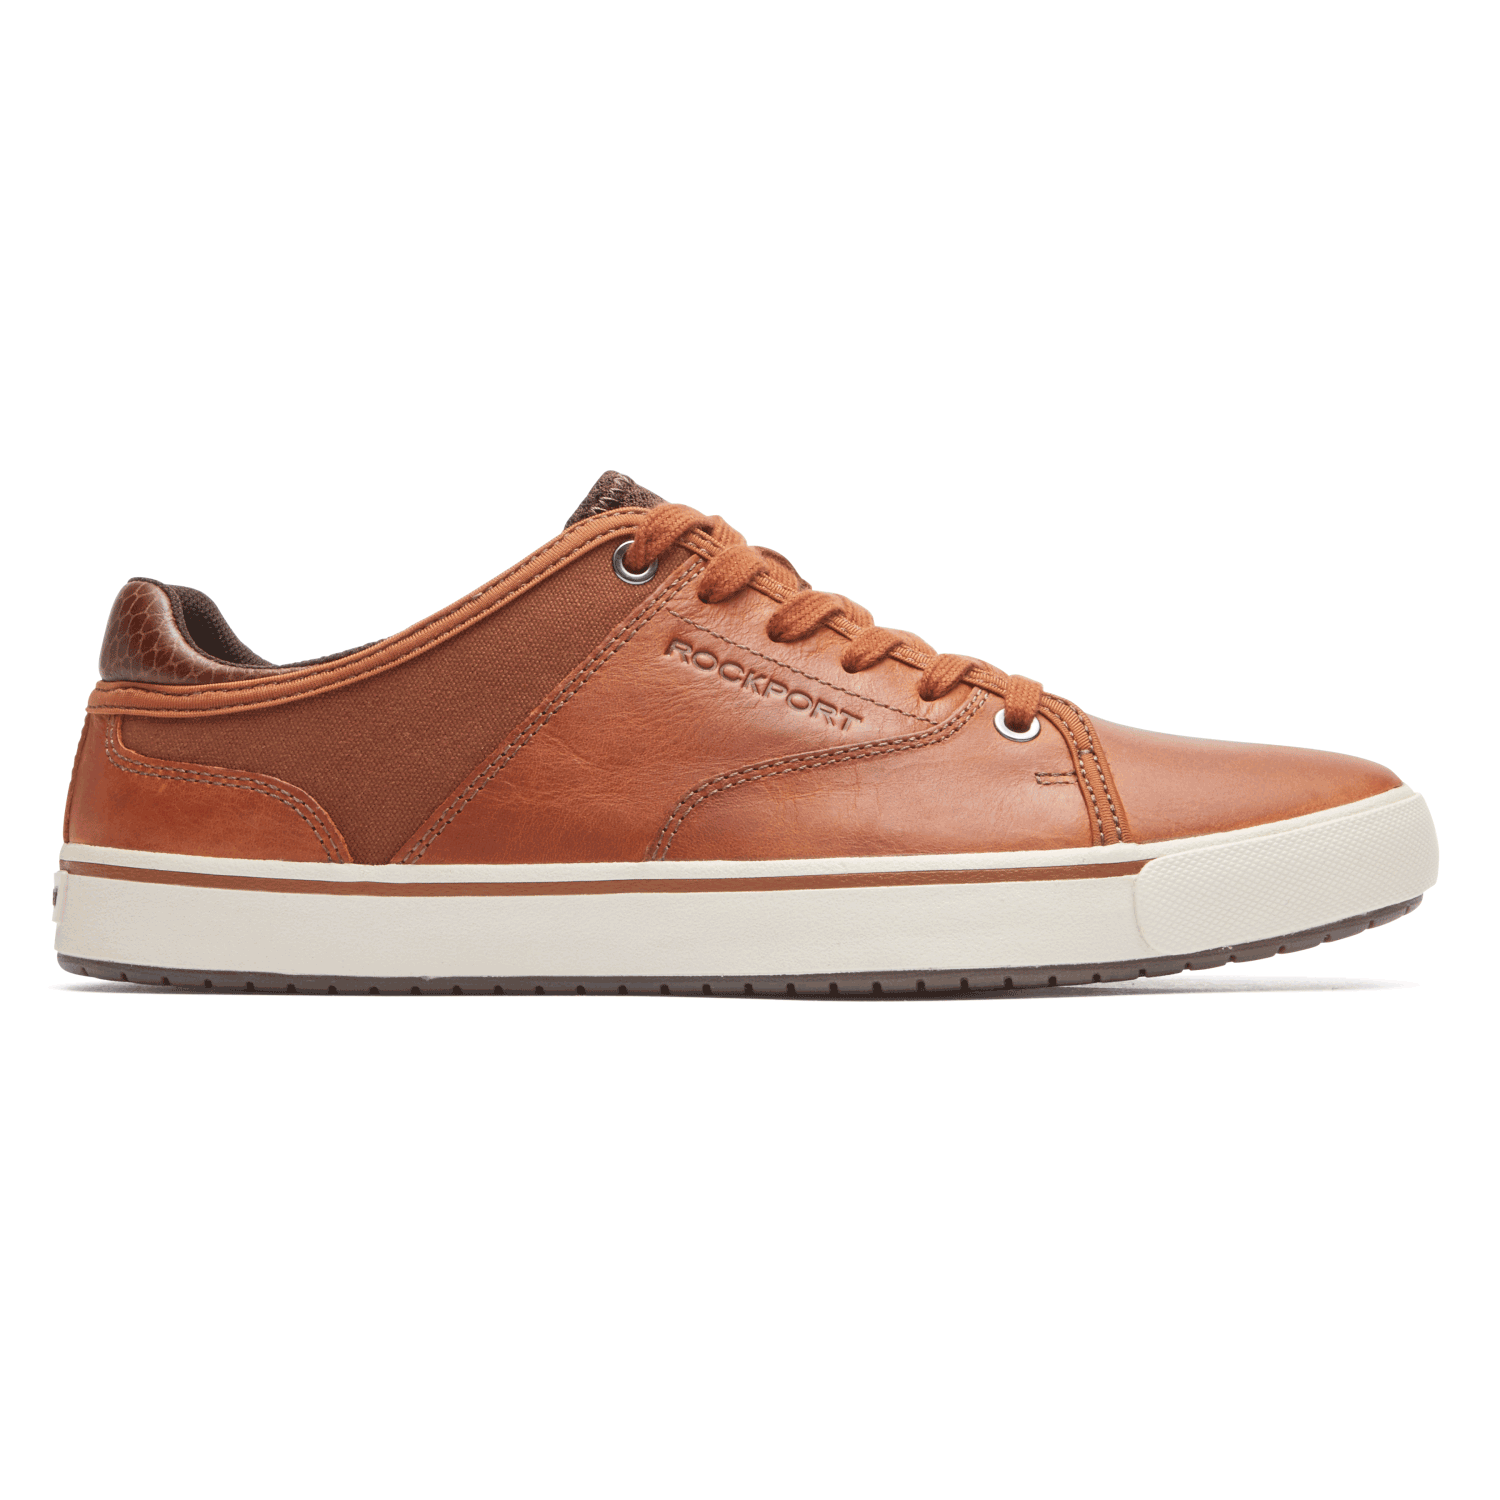 Rockport Men's Tan Path to Greatness Lace to Toe